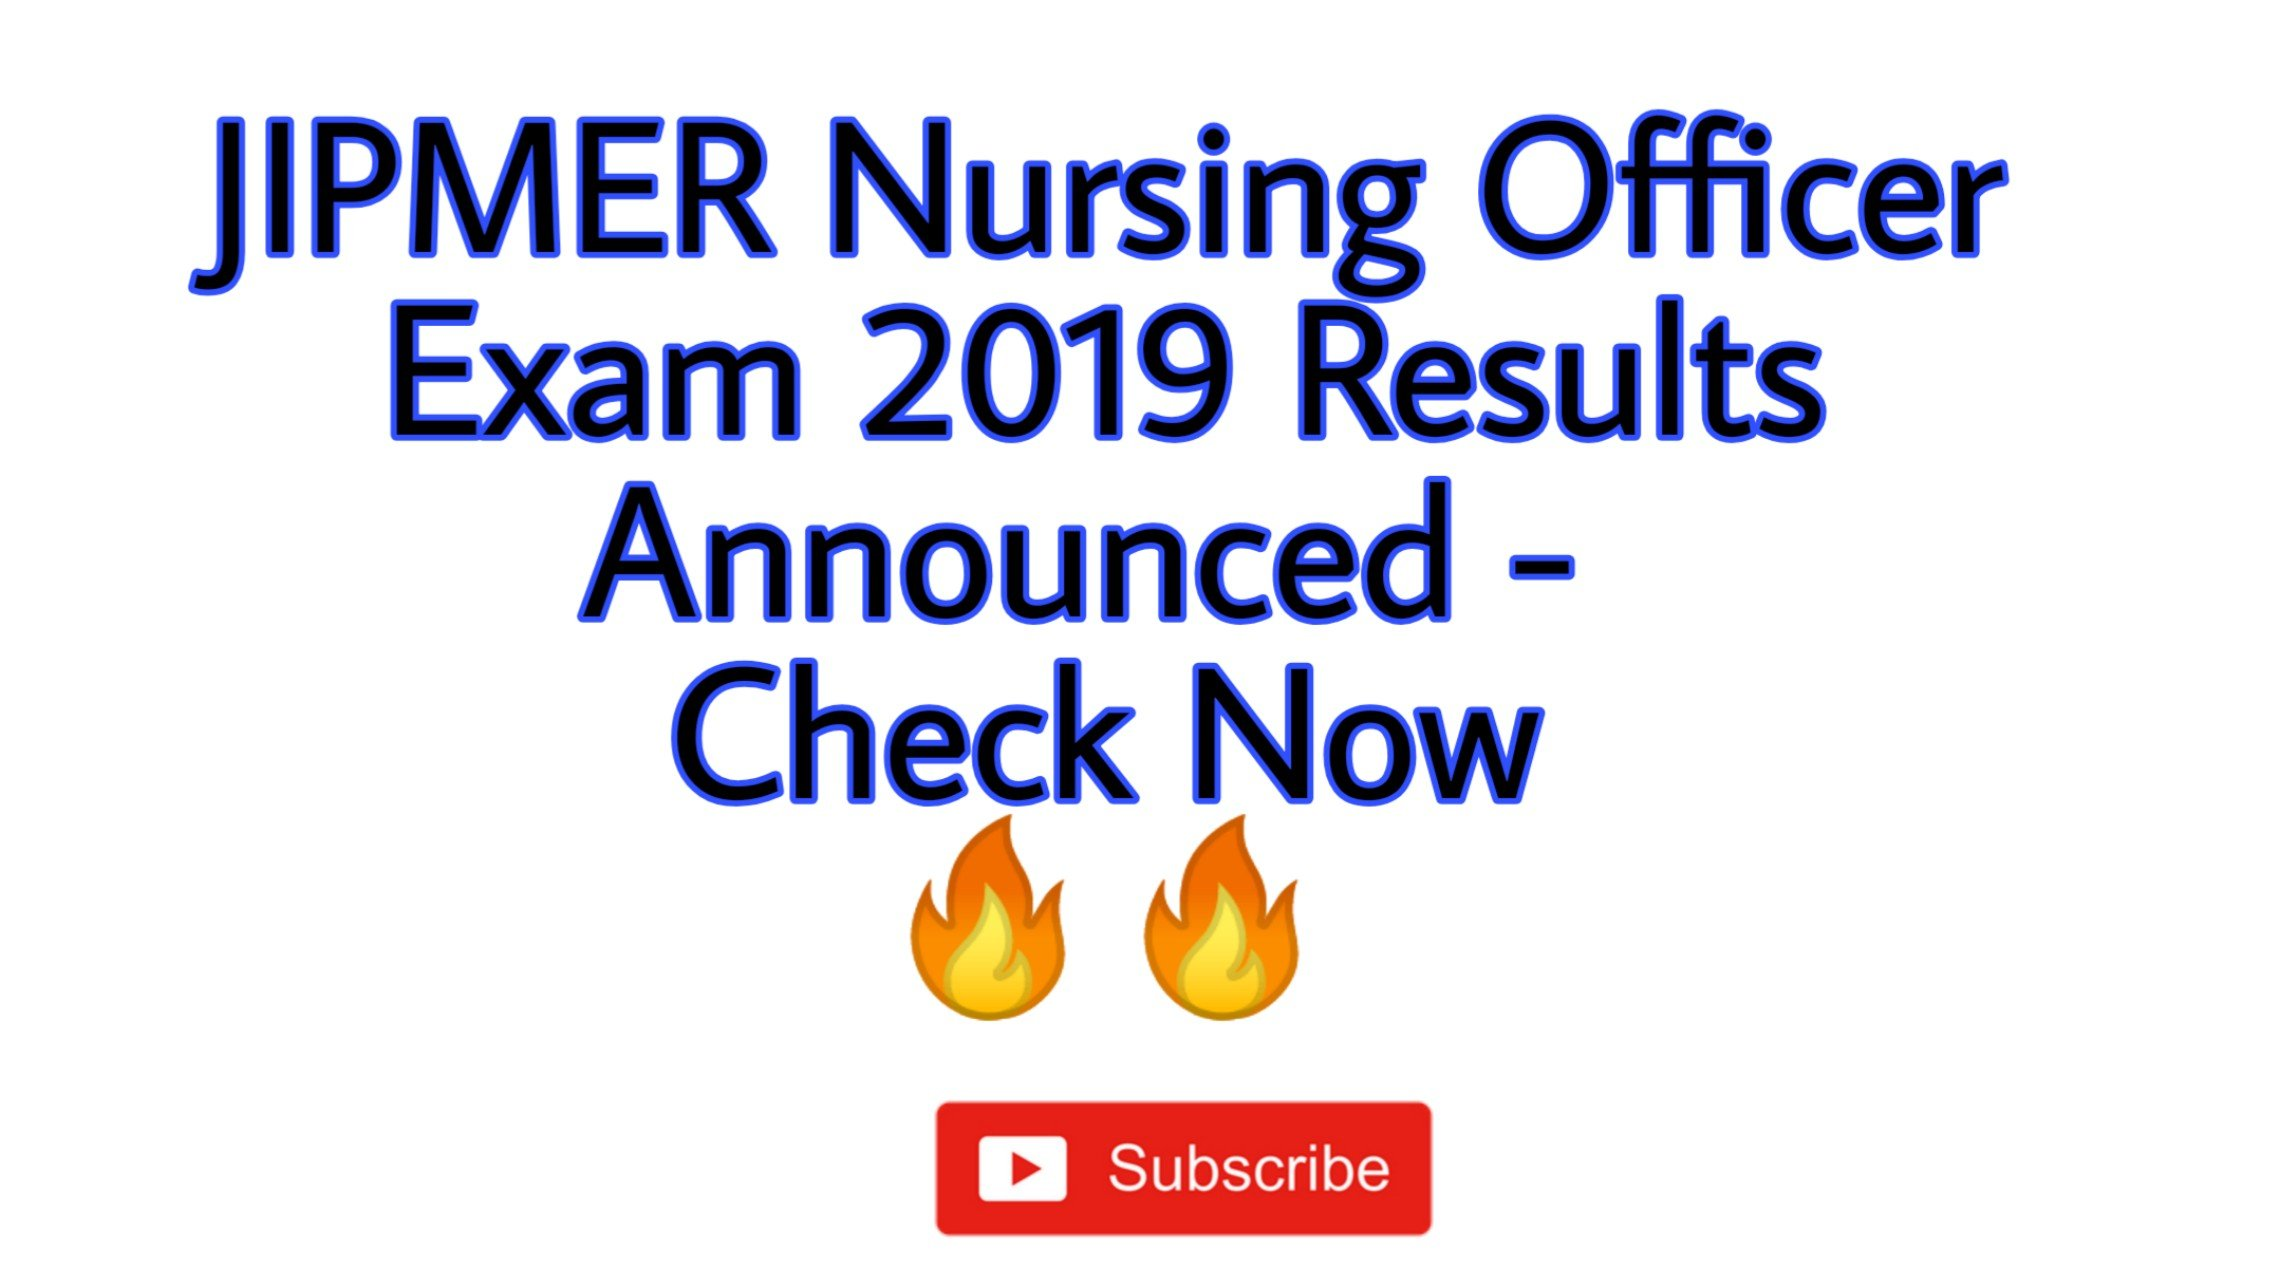 JIPMER Nursing Officer Exam Result 2019 Announced - The